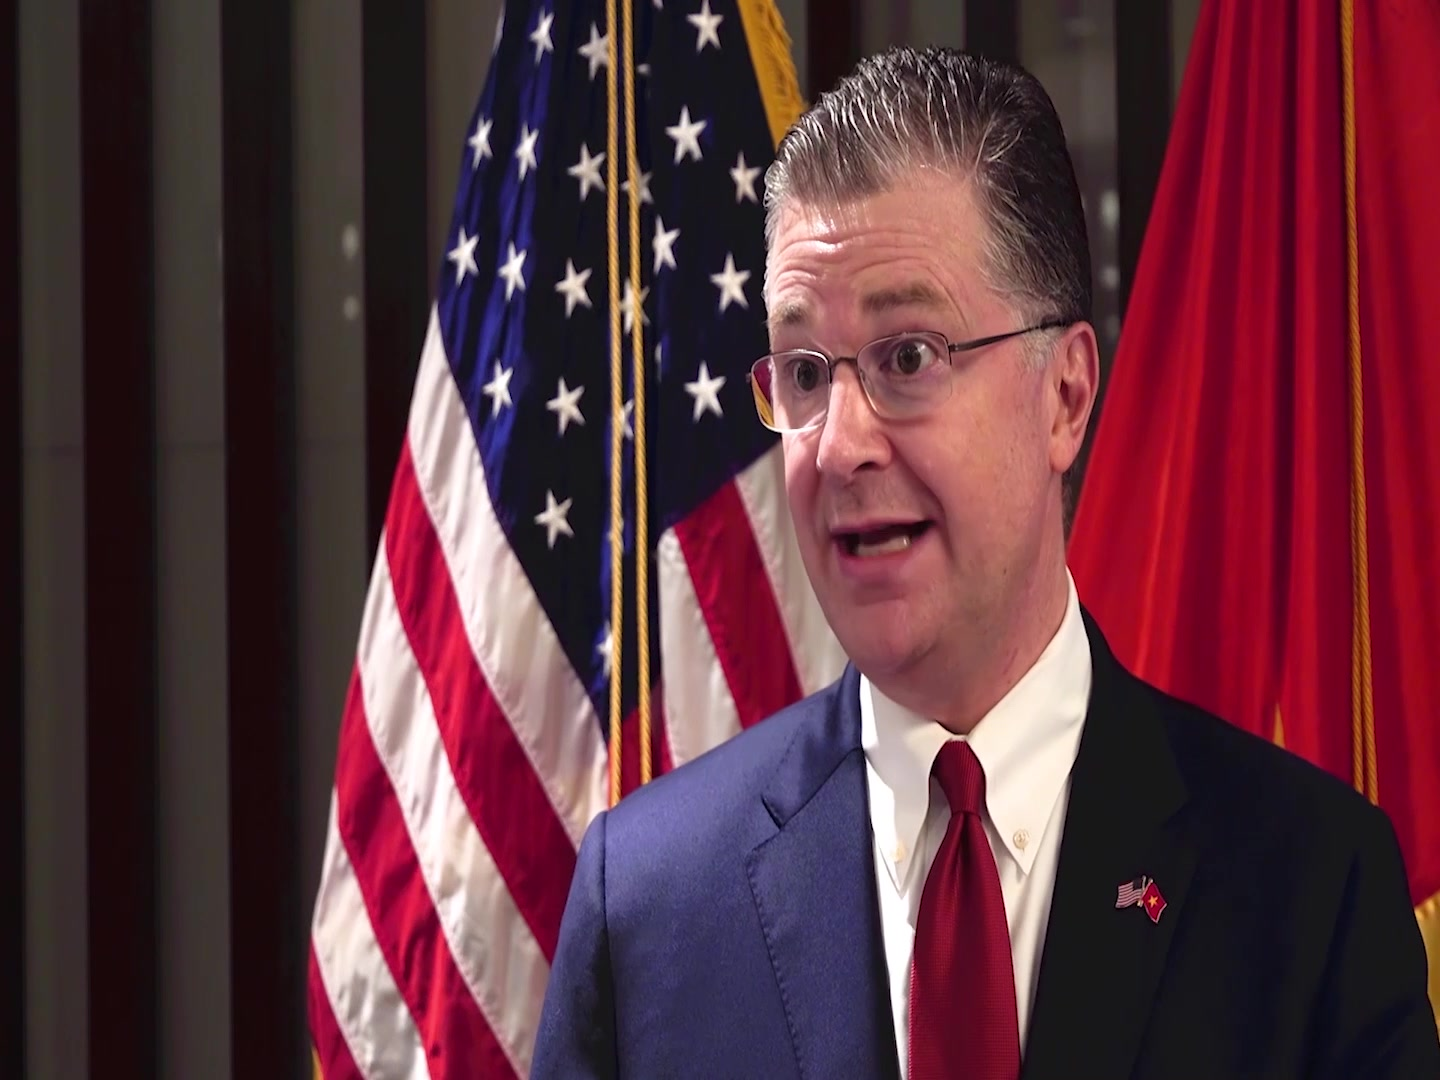 The United States Ambassador to Vietnam discusses the importance of U.S./Vietnam partnership and the role that cultural diplomacy plays in the two countries alliance during a visit from the U.S. Air Force Band of the Pacific to Vietnam.